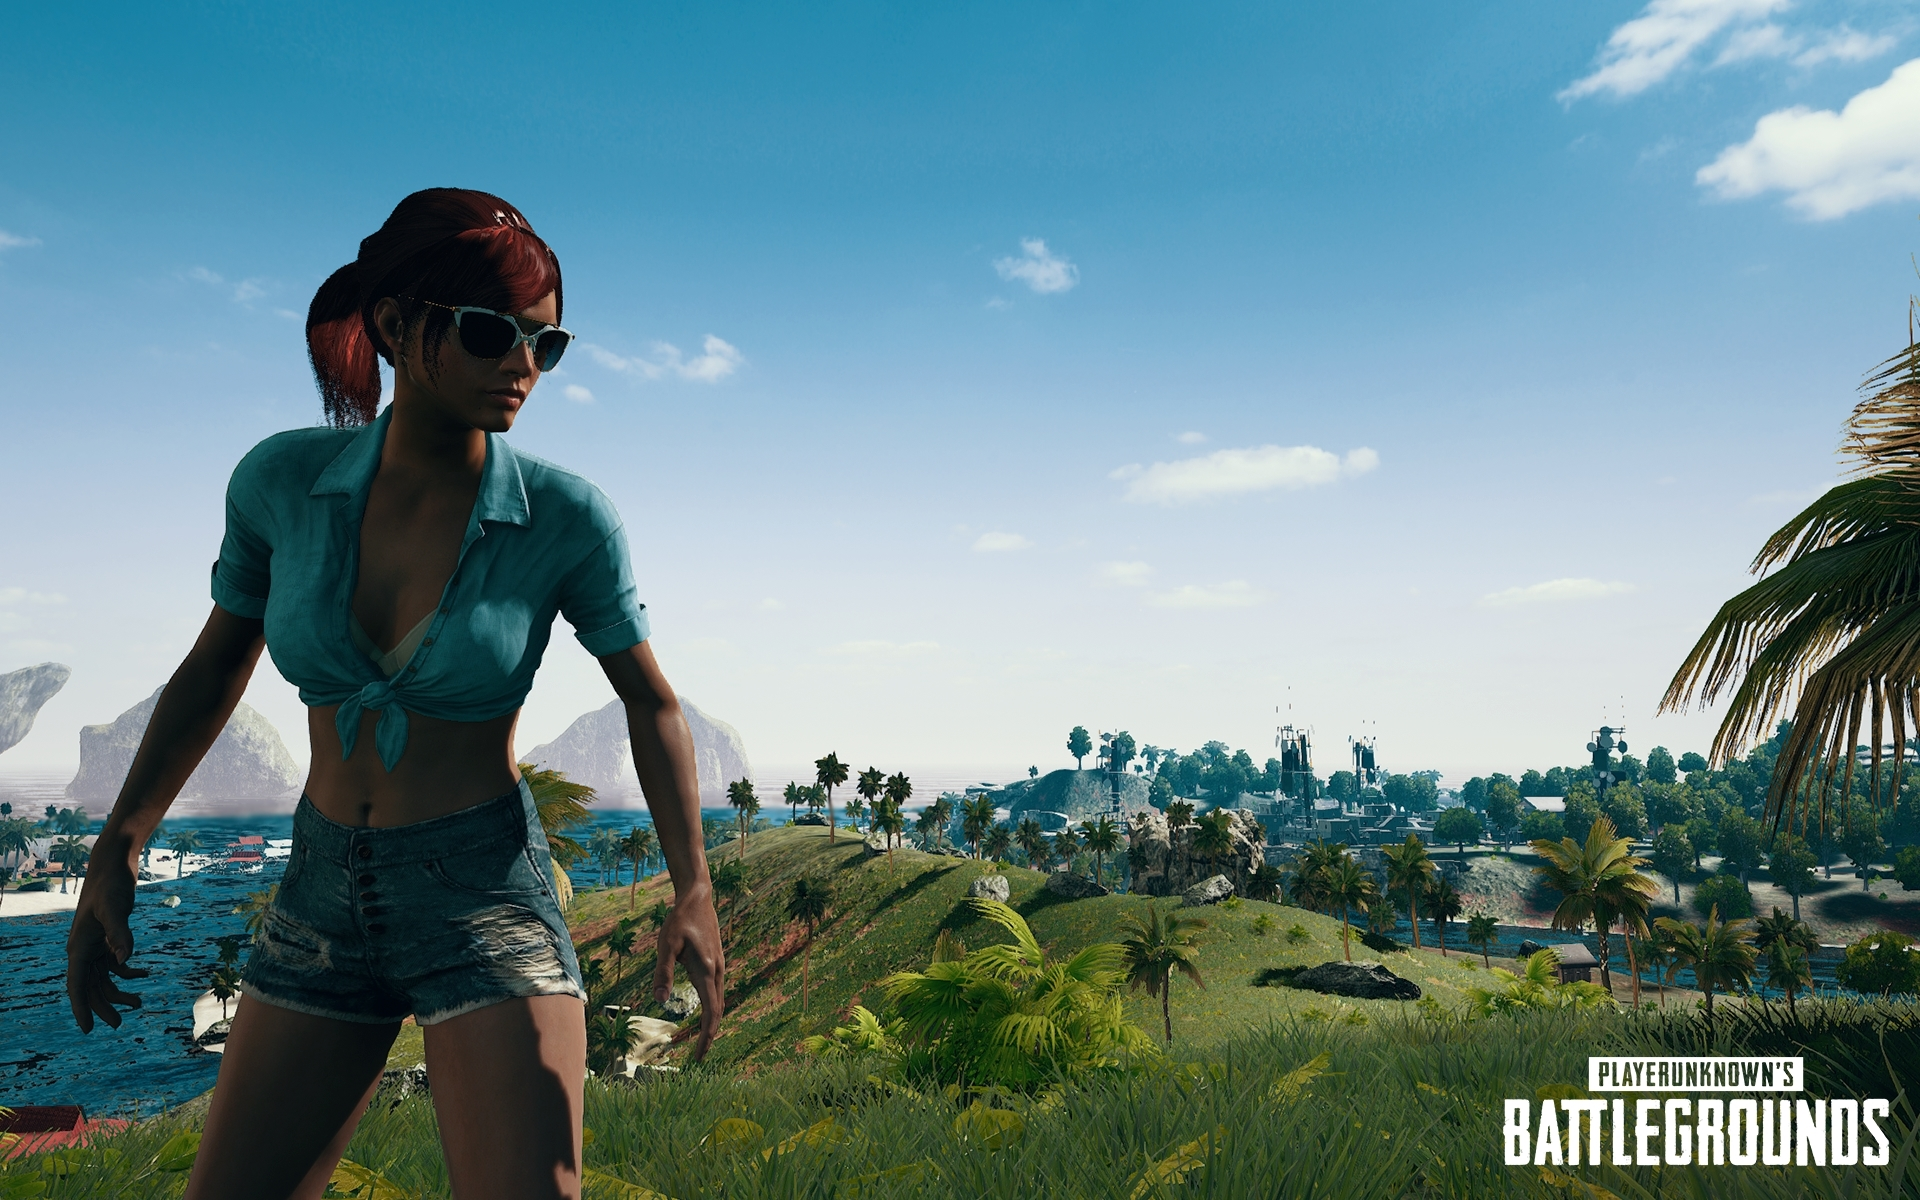 After Four Rounds Of Testing Our Third Map Sanhok Is Finally Ready For Showtime The Map May Be Smaller But The Battles Wont Be